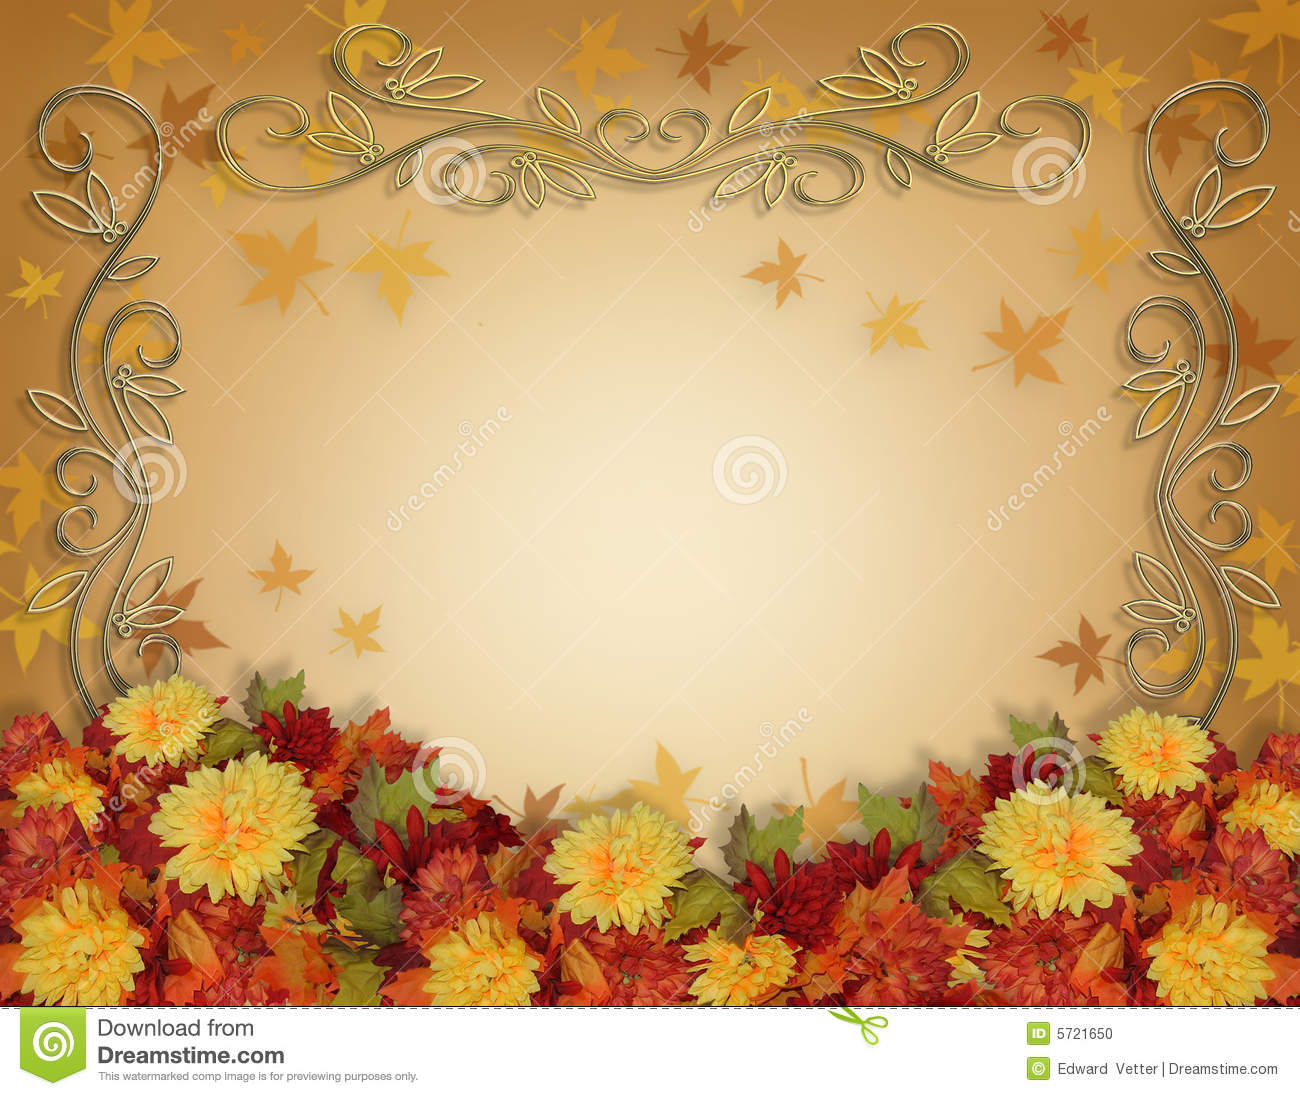 thanksgiving fall leaves and flowers border design stock holly leaves clipart black and white holly leaves and berries clipart